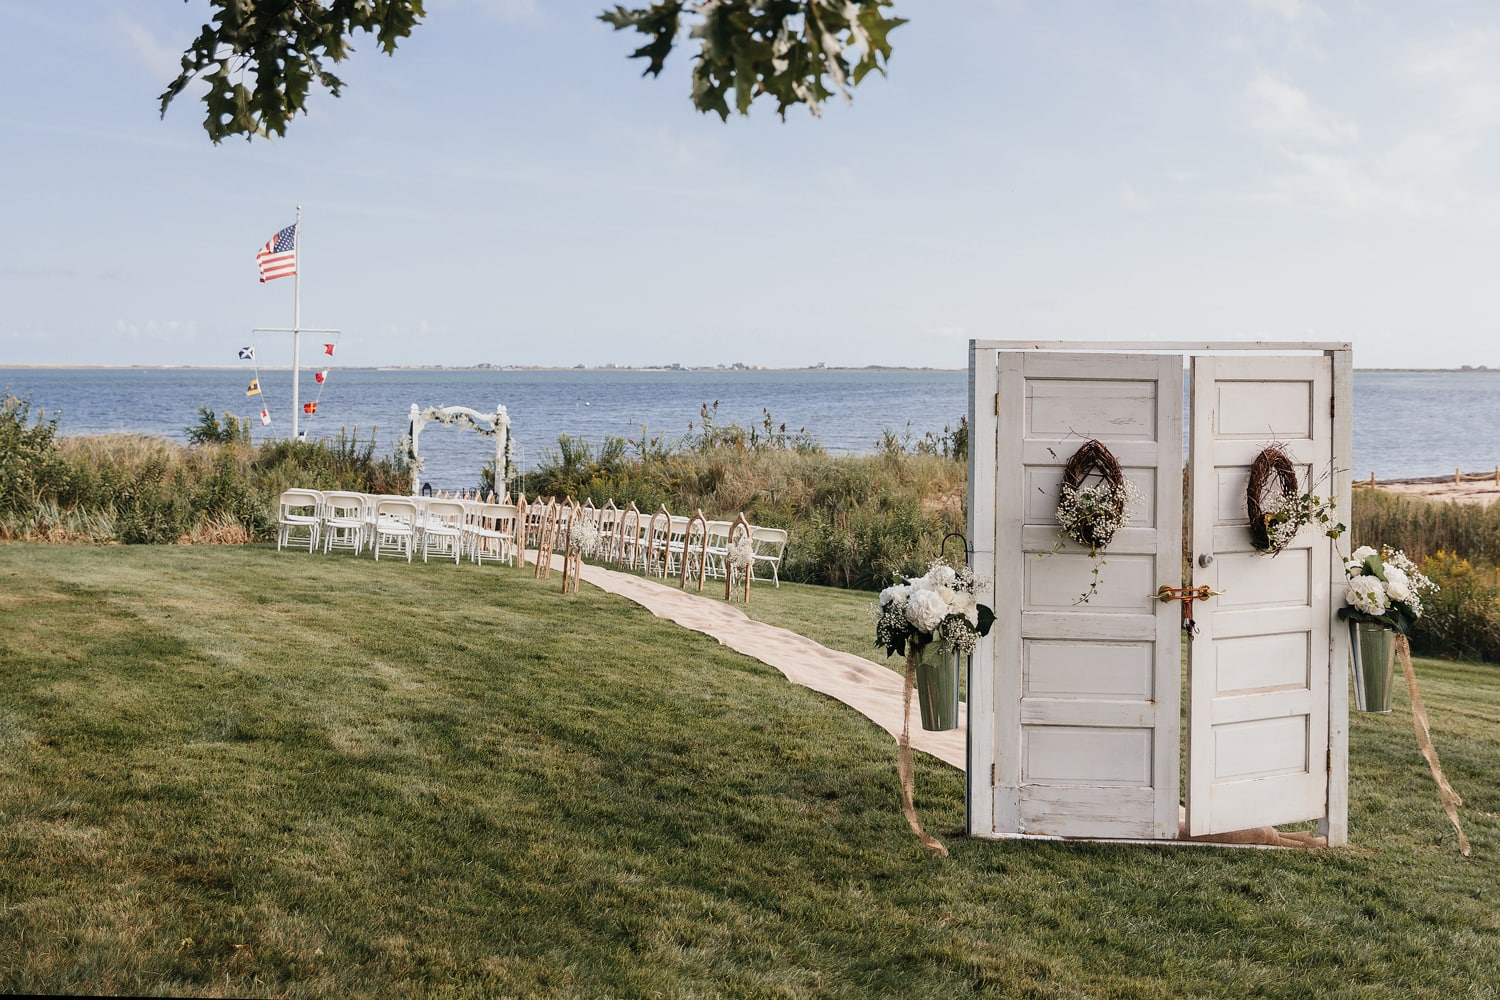 Rustic wedding ceremony setting near the water in the Hamptons